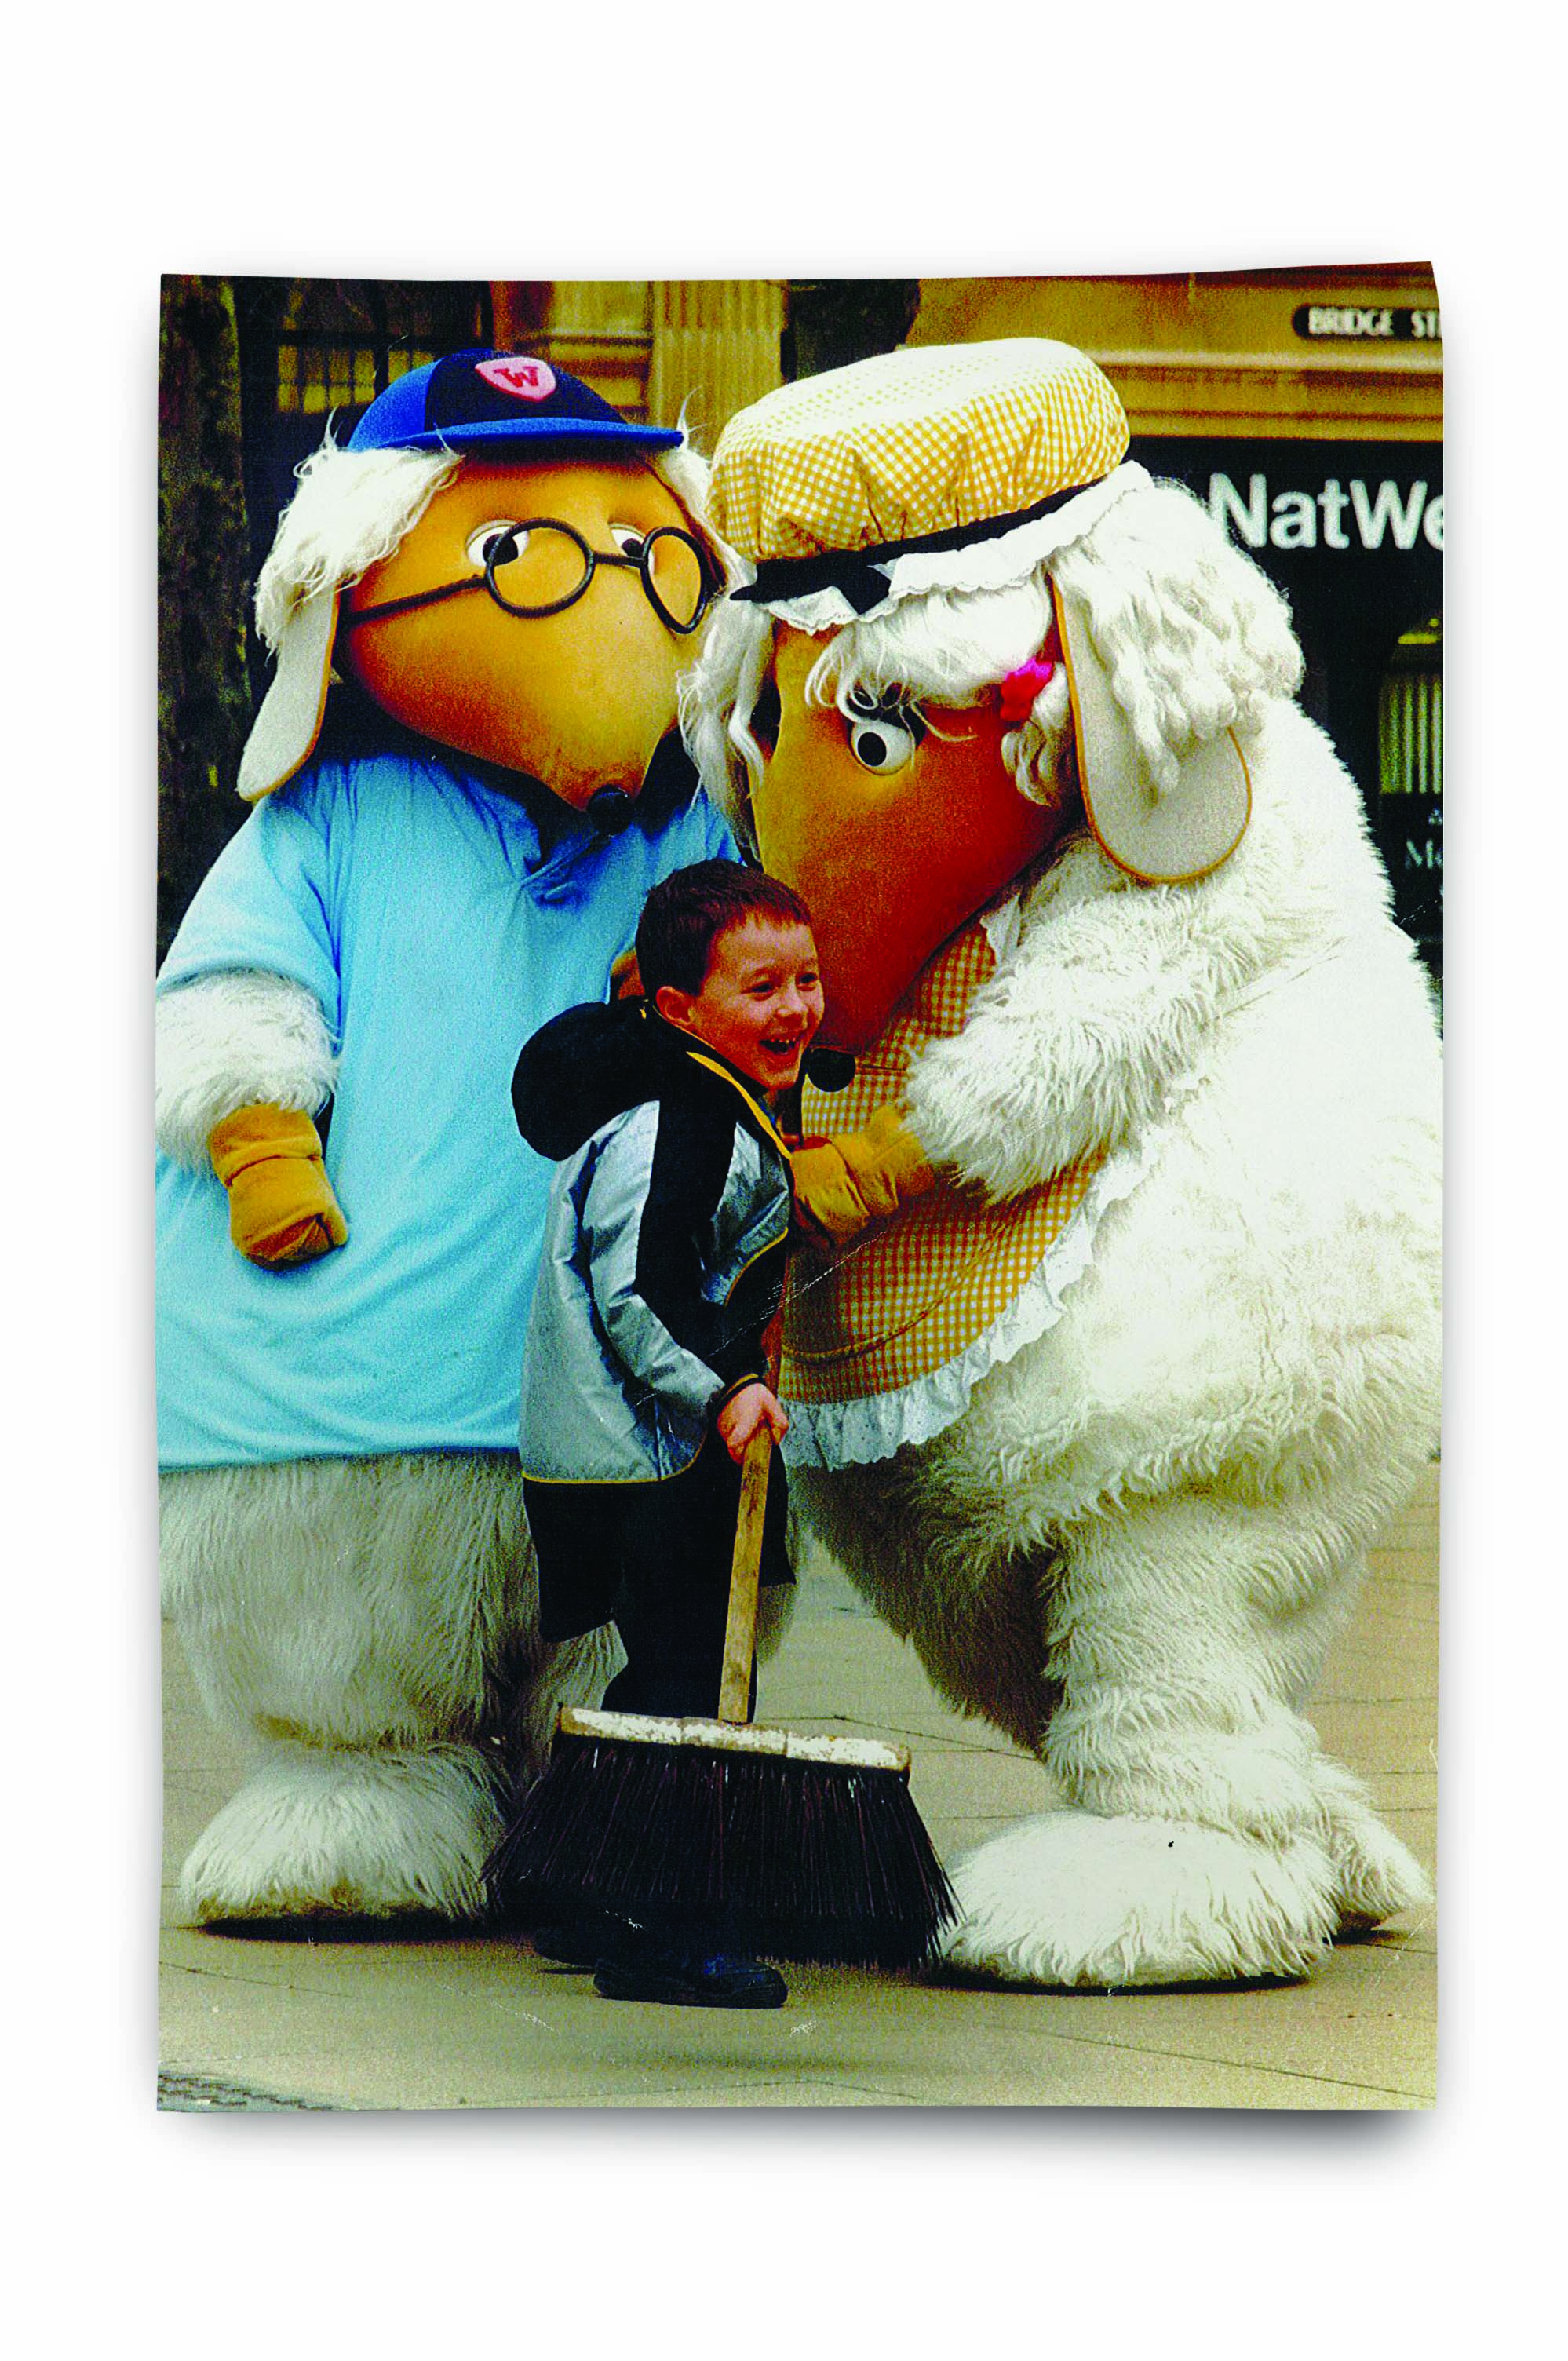 An image of two people in Wombles costumes on National Spring Clean Day 1989